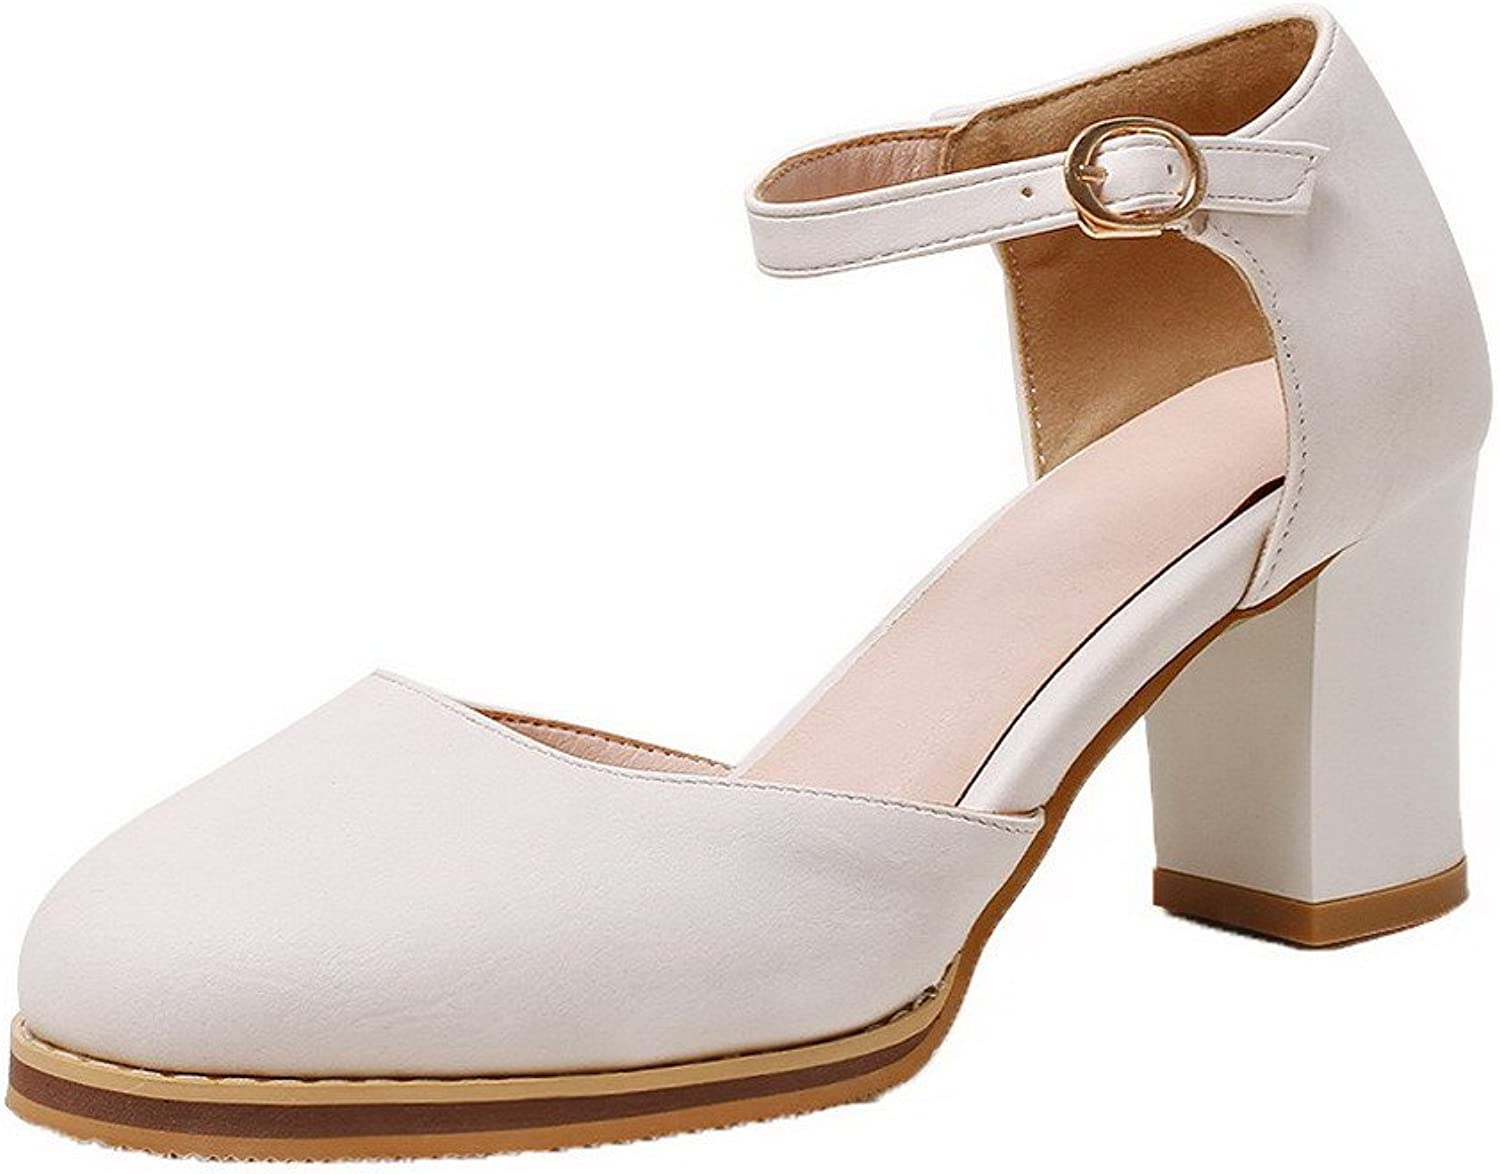 AmoonyFashion Women's Kitten-Heels Solid PU Buckle Round-Toe Sandals